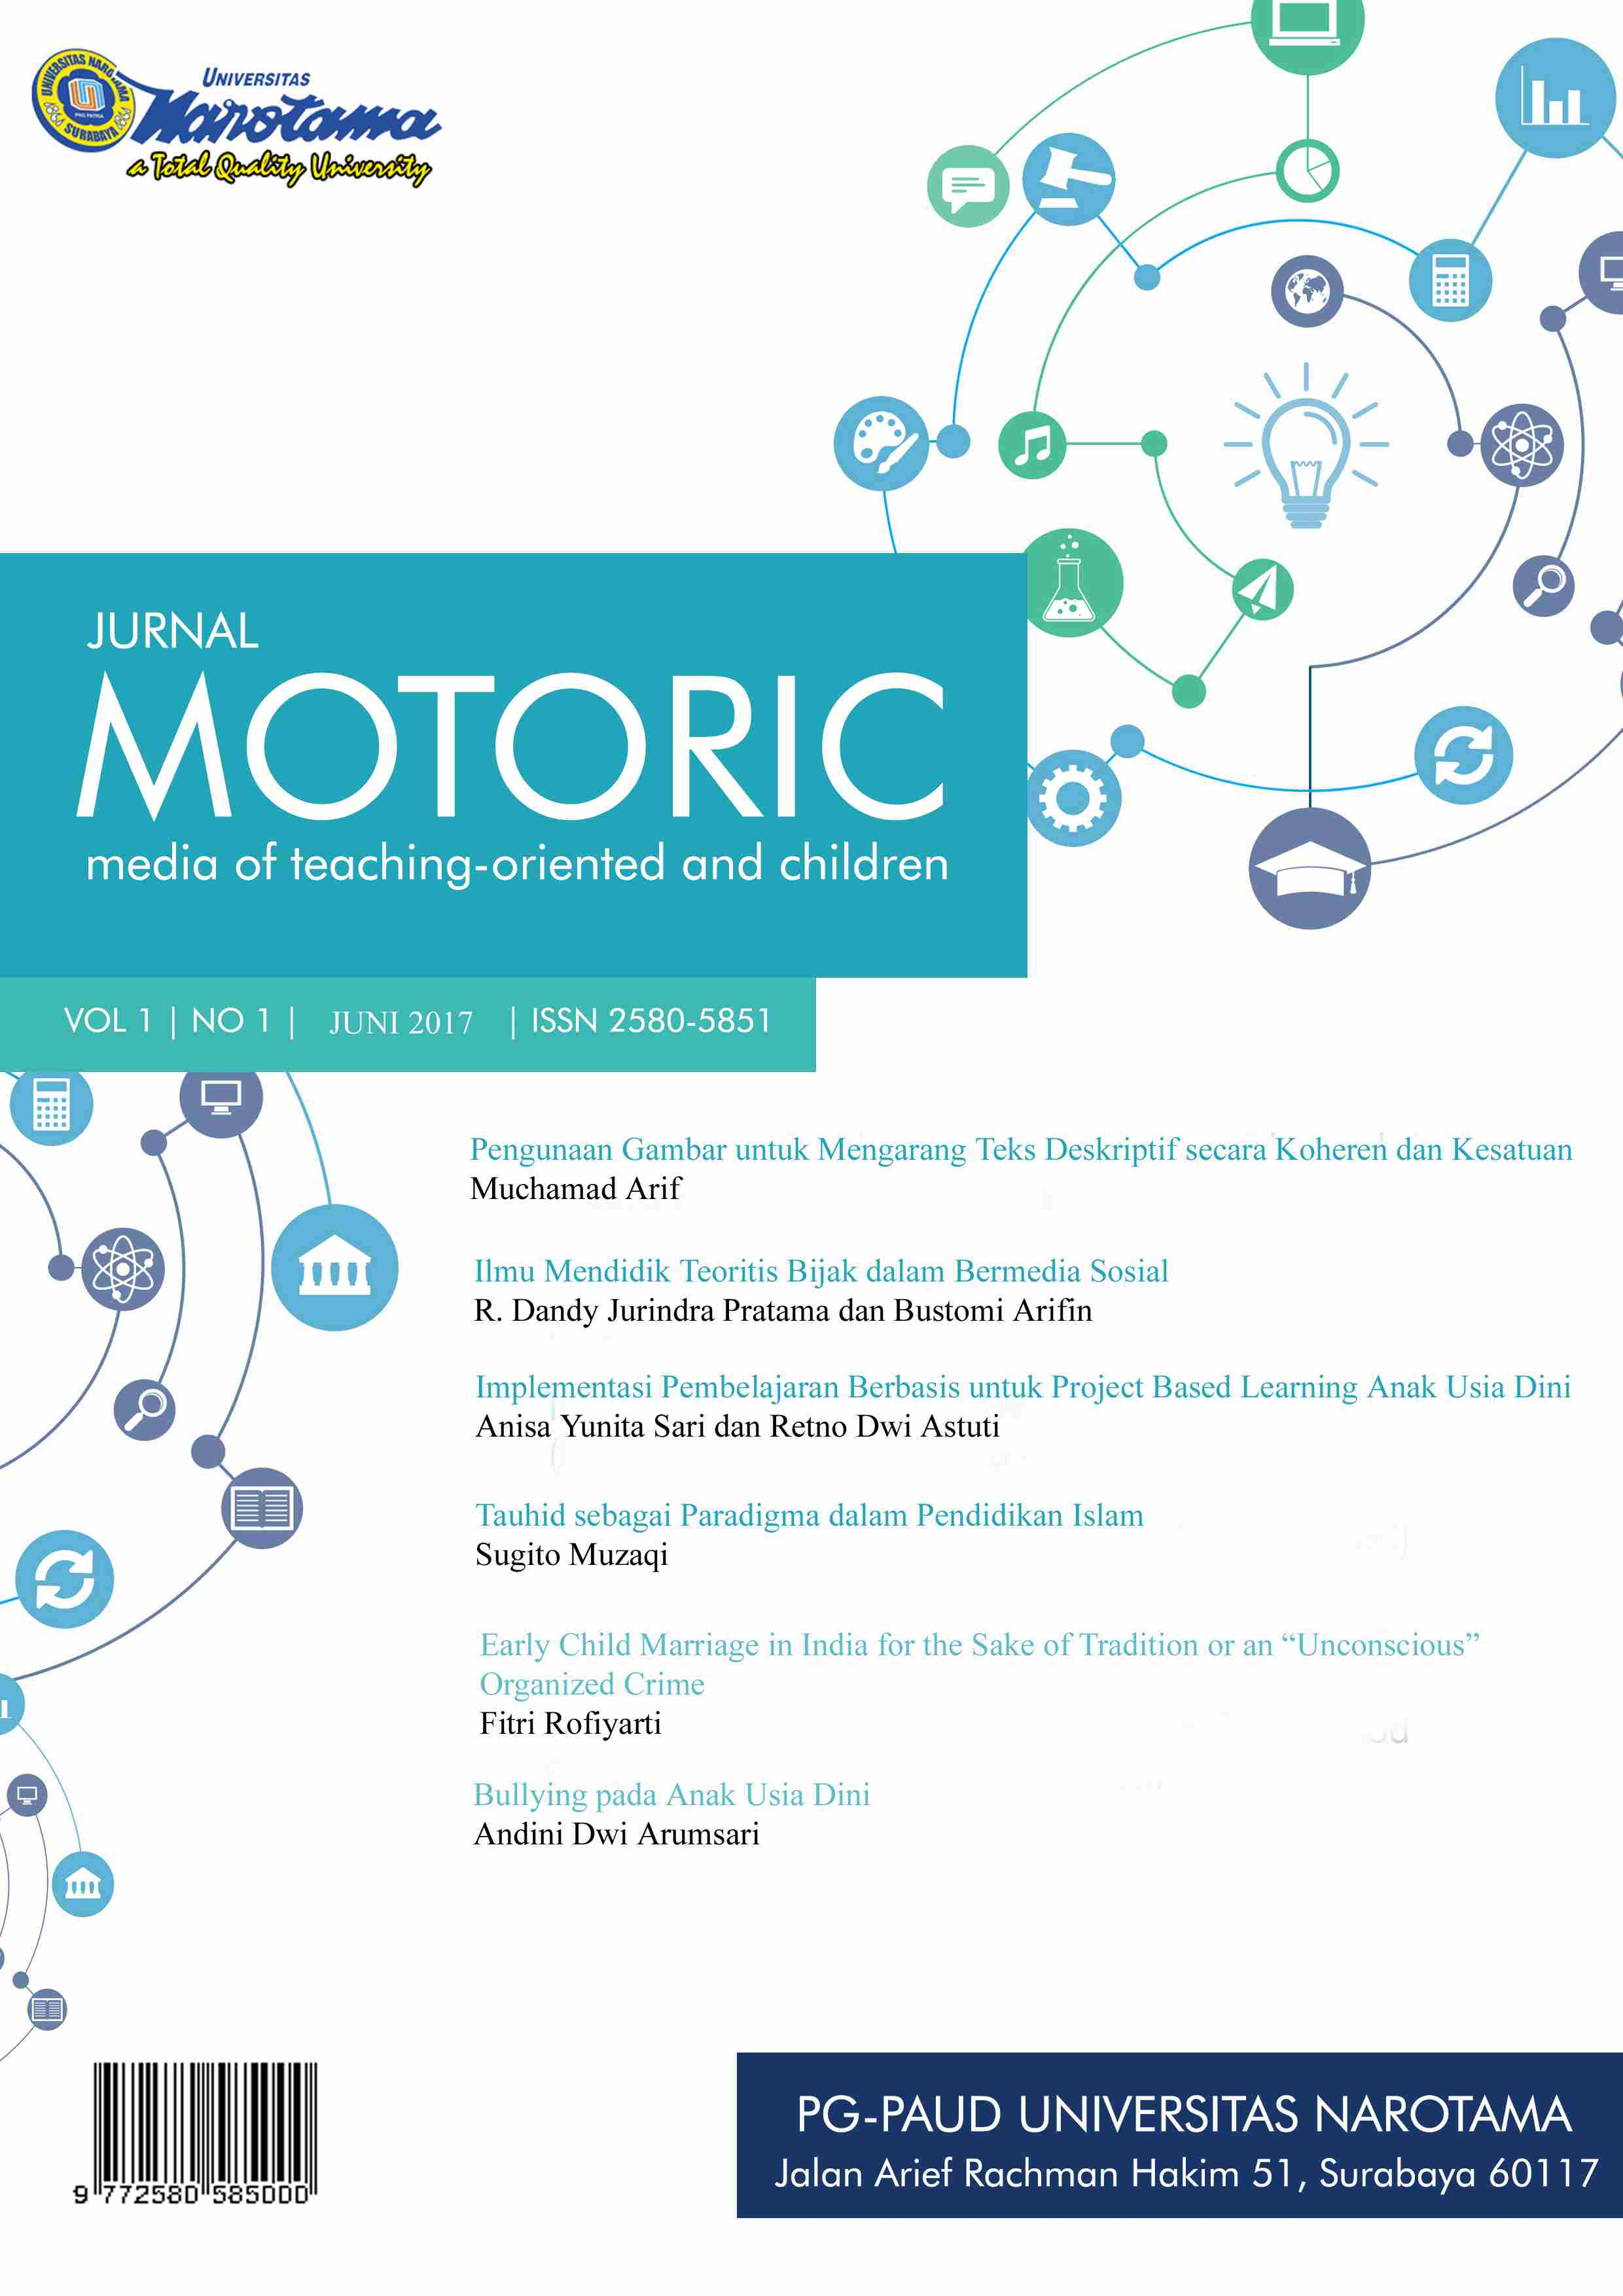 Motoric Vol 1 No 1 2017